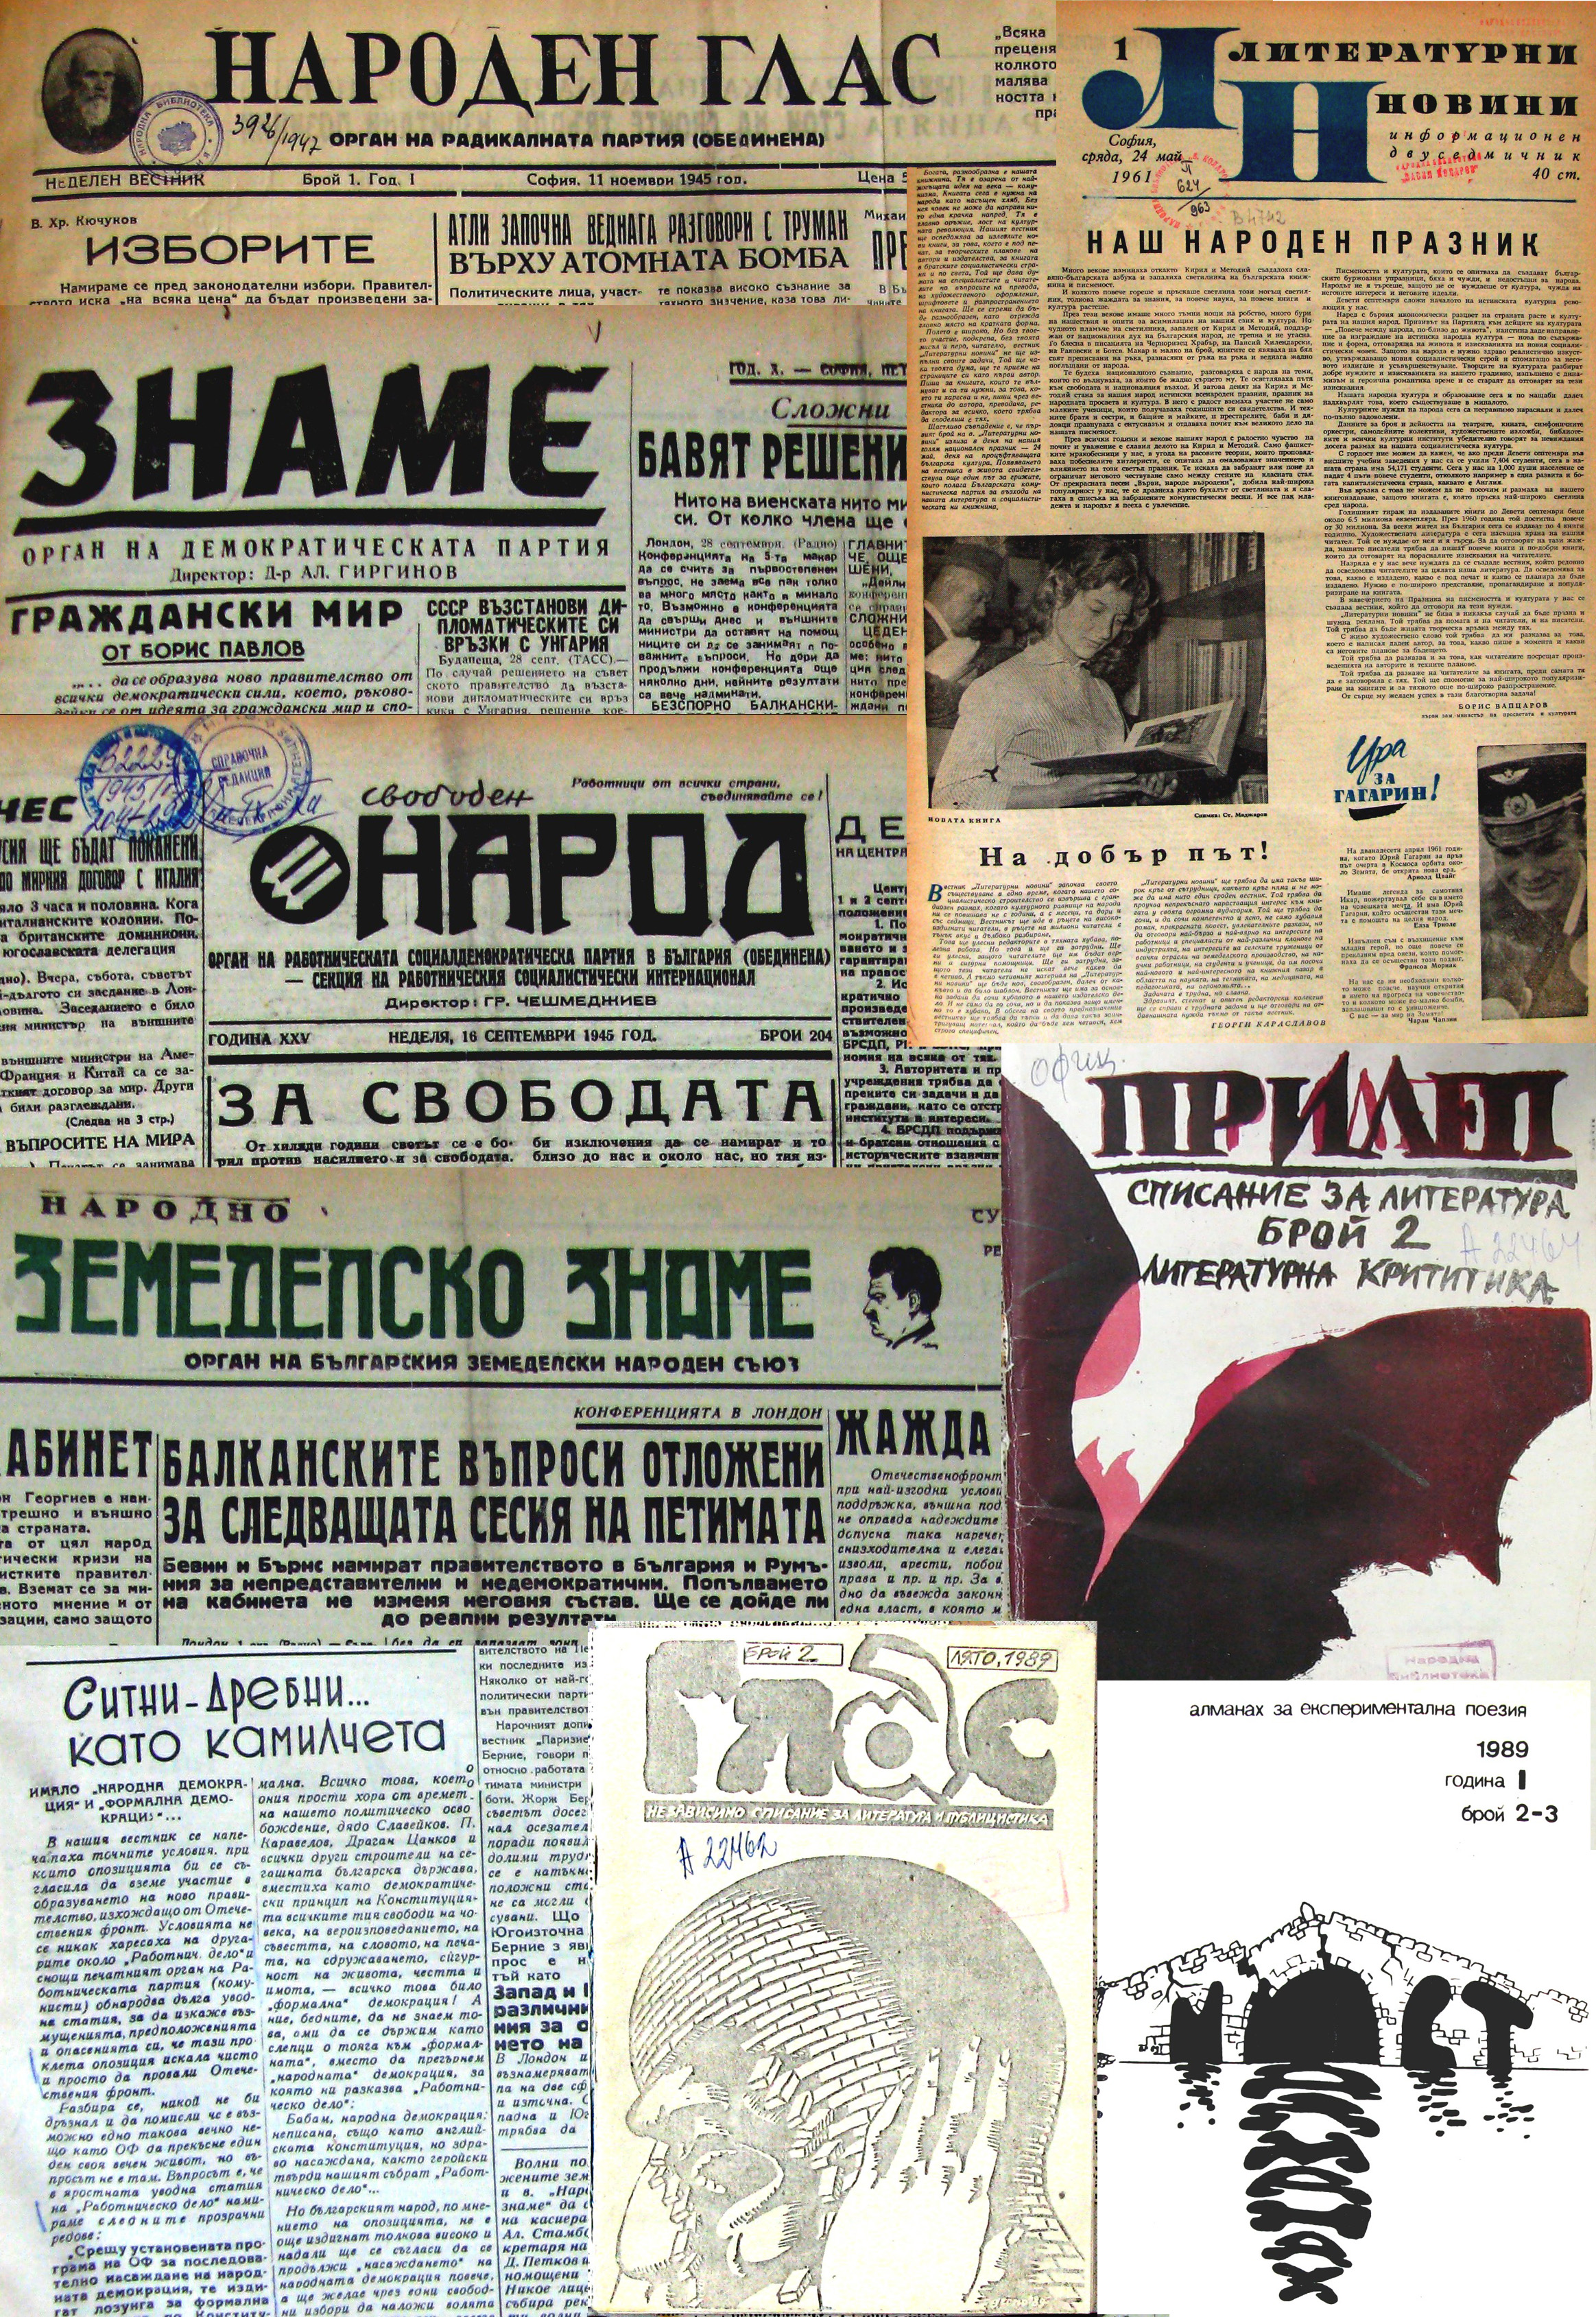 Photo of some of the banned newspapers and Samizdat Journals